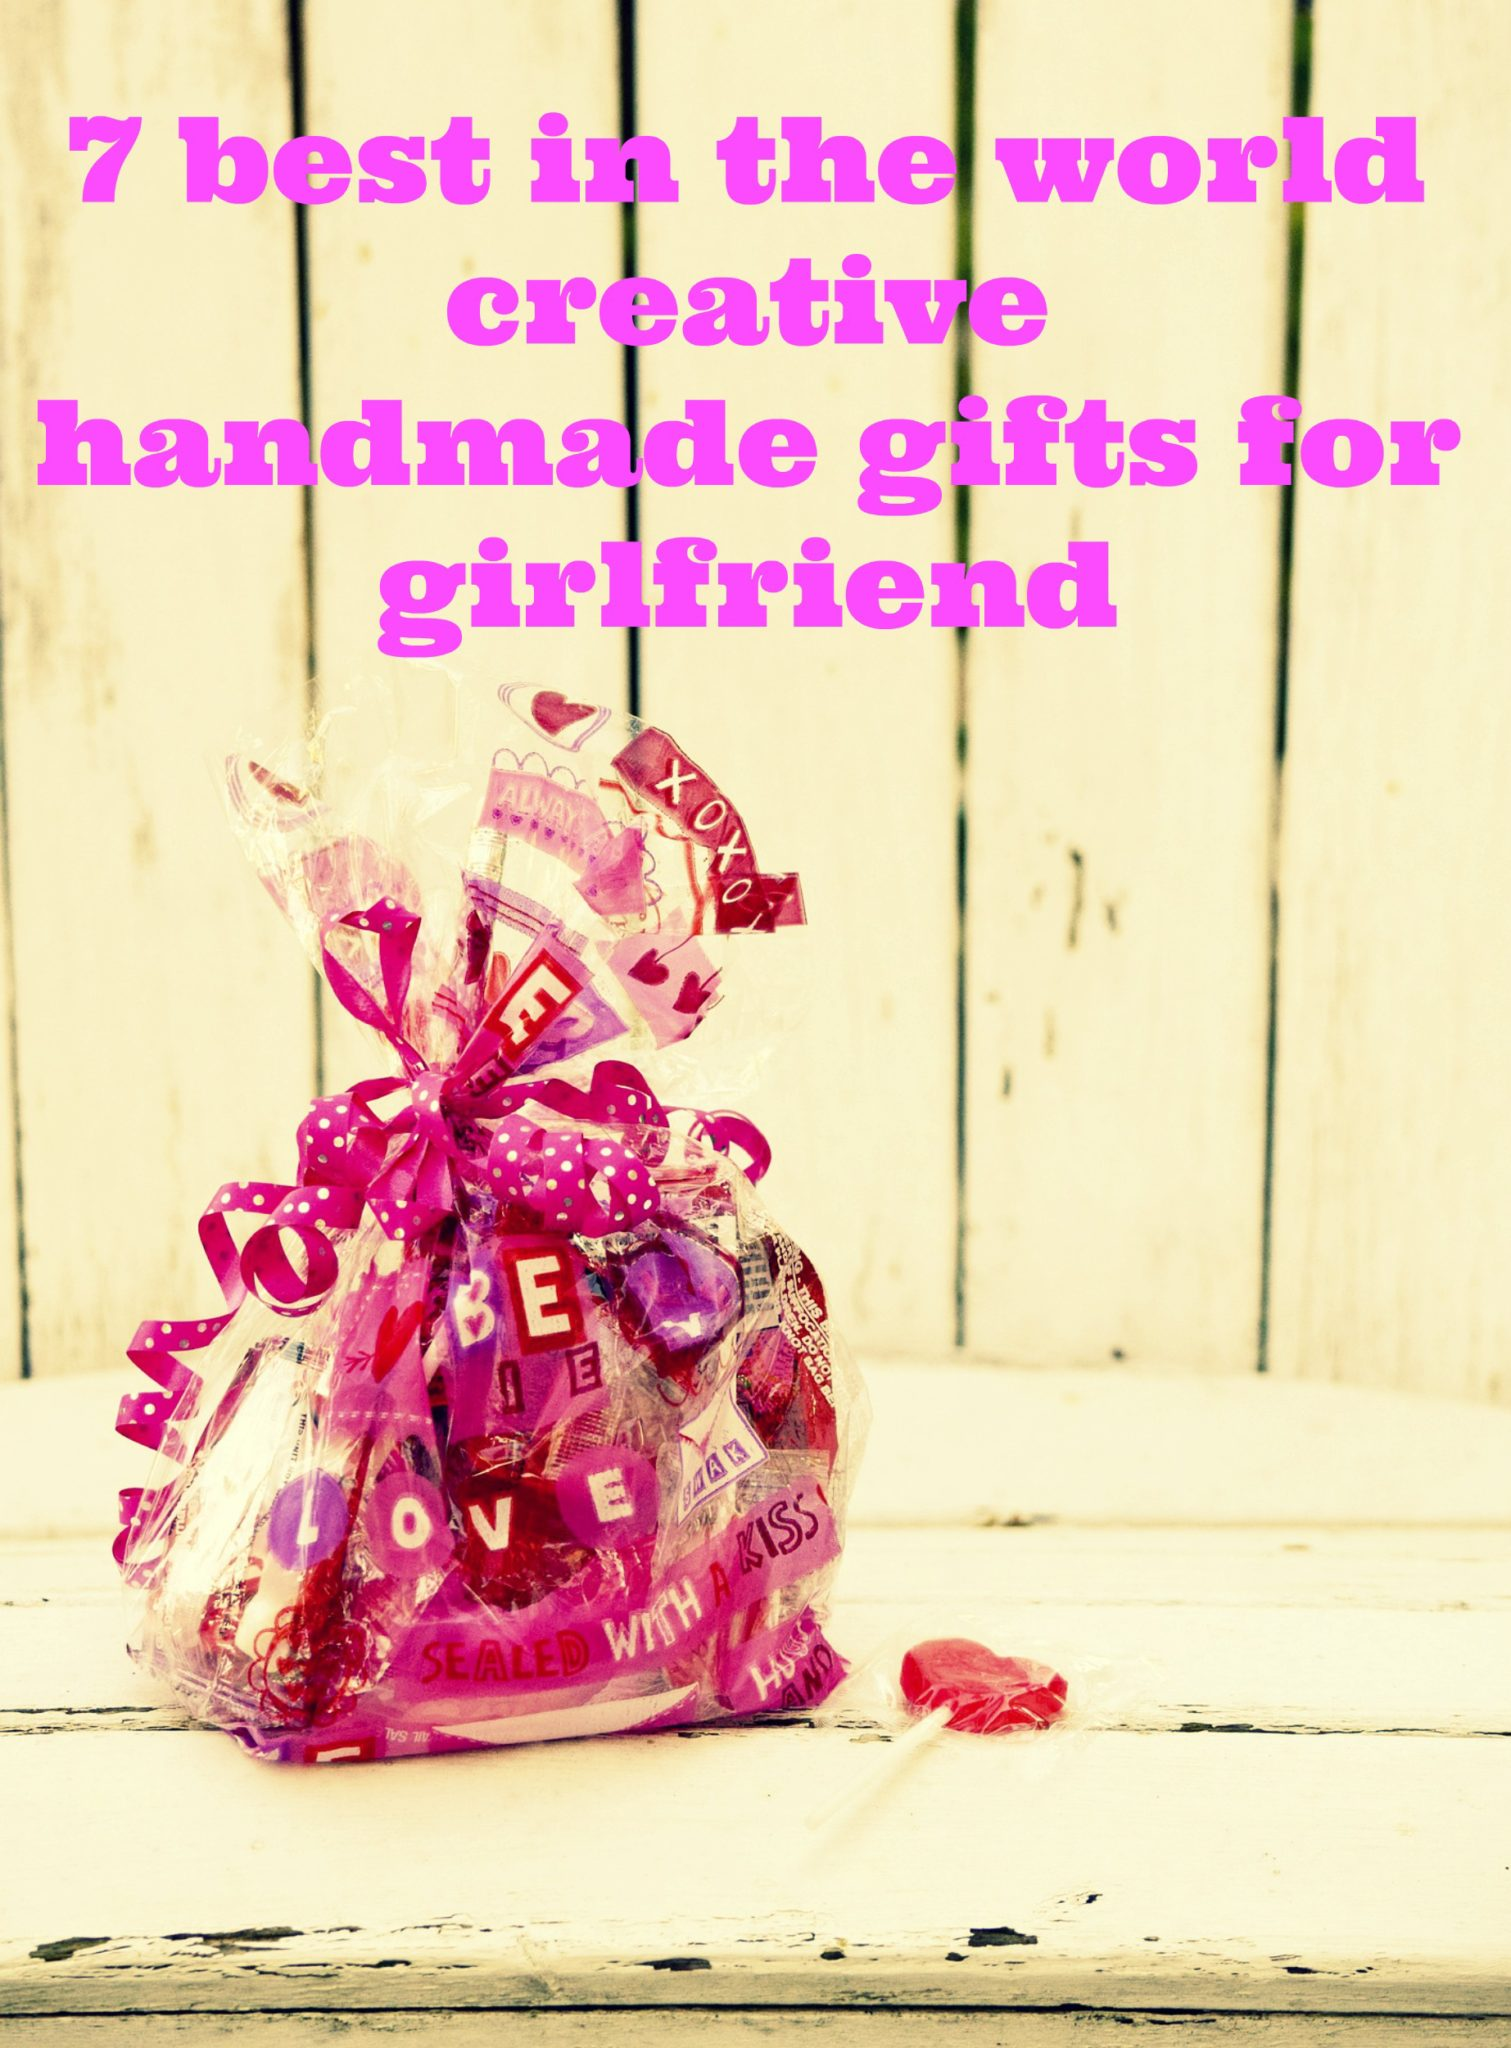 Creative handmade gifts for girlfriend for Creative handmade ideas for gifts